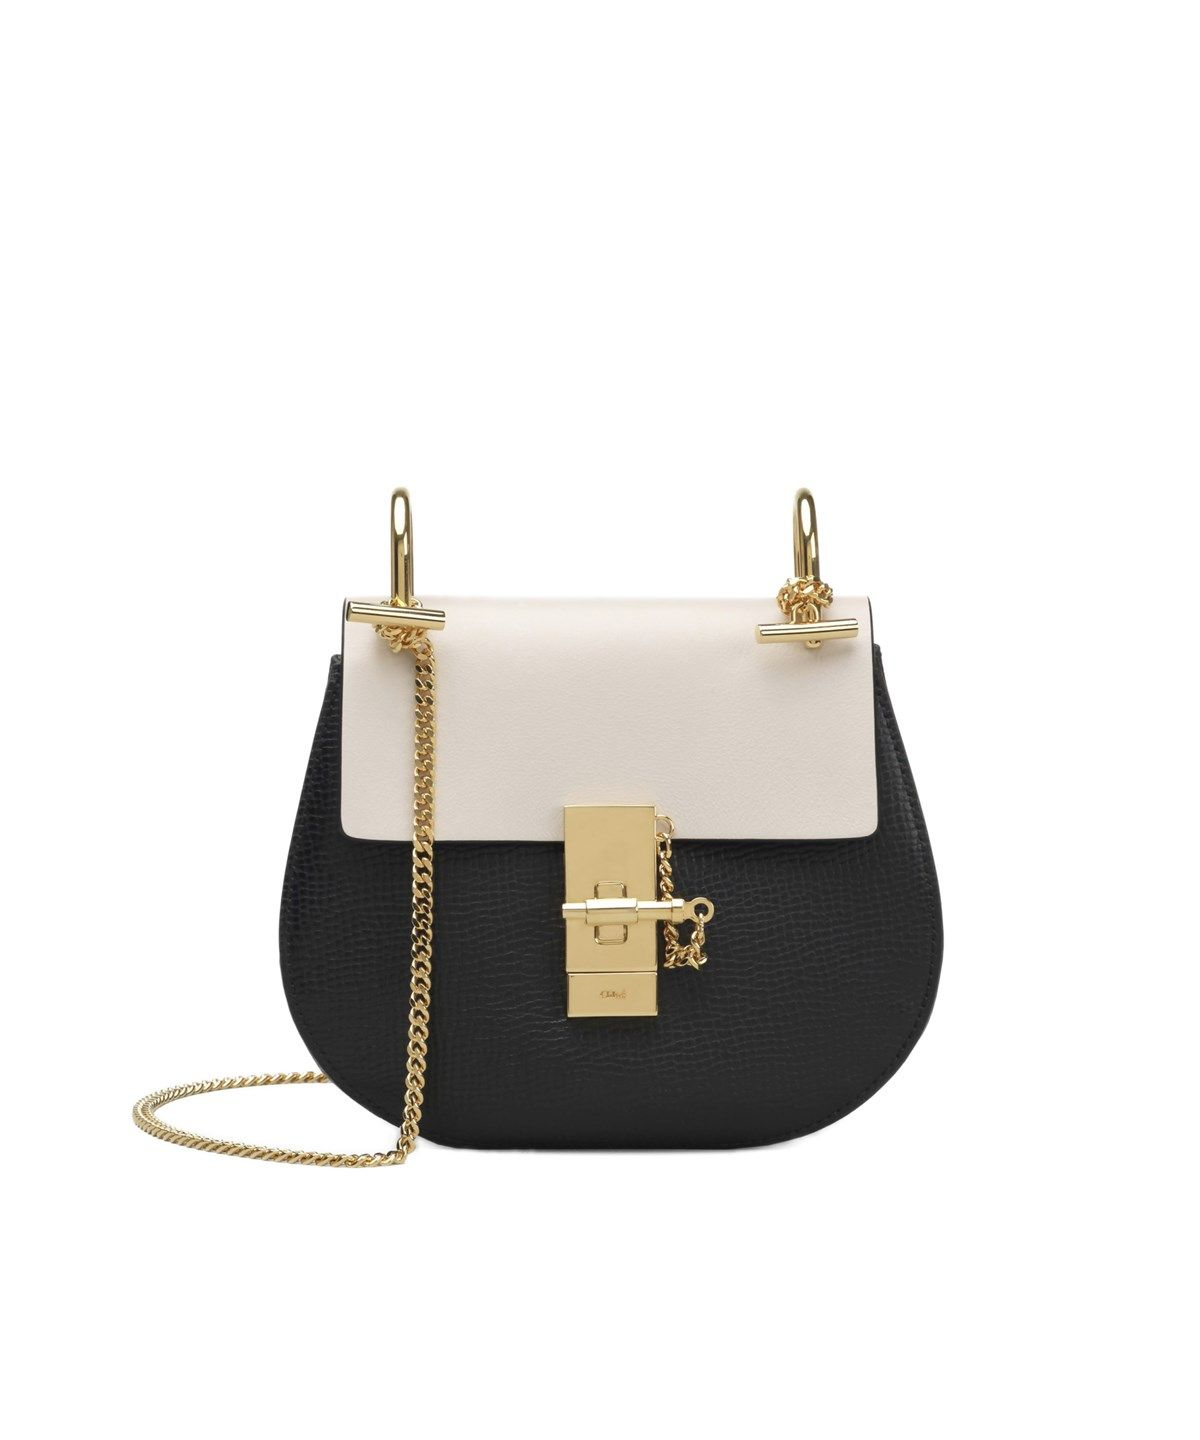 1817354f9bb CHLOÉ DREW MINI SHOULDER BAG BLACK WHITE .  chloé  bags  shoulder bags   lining  suede